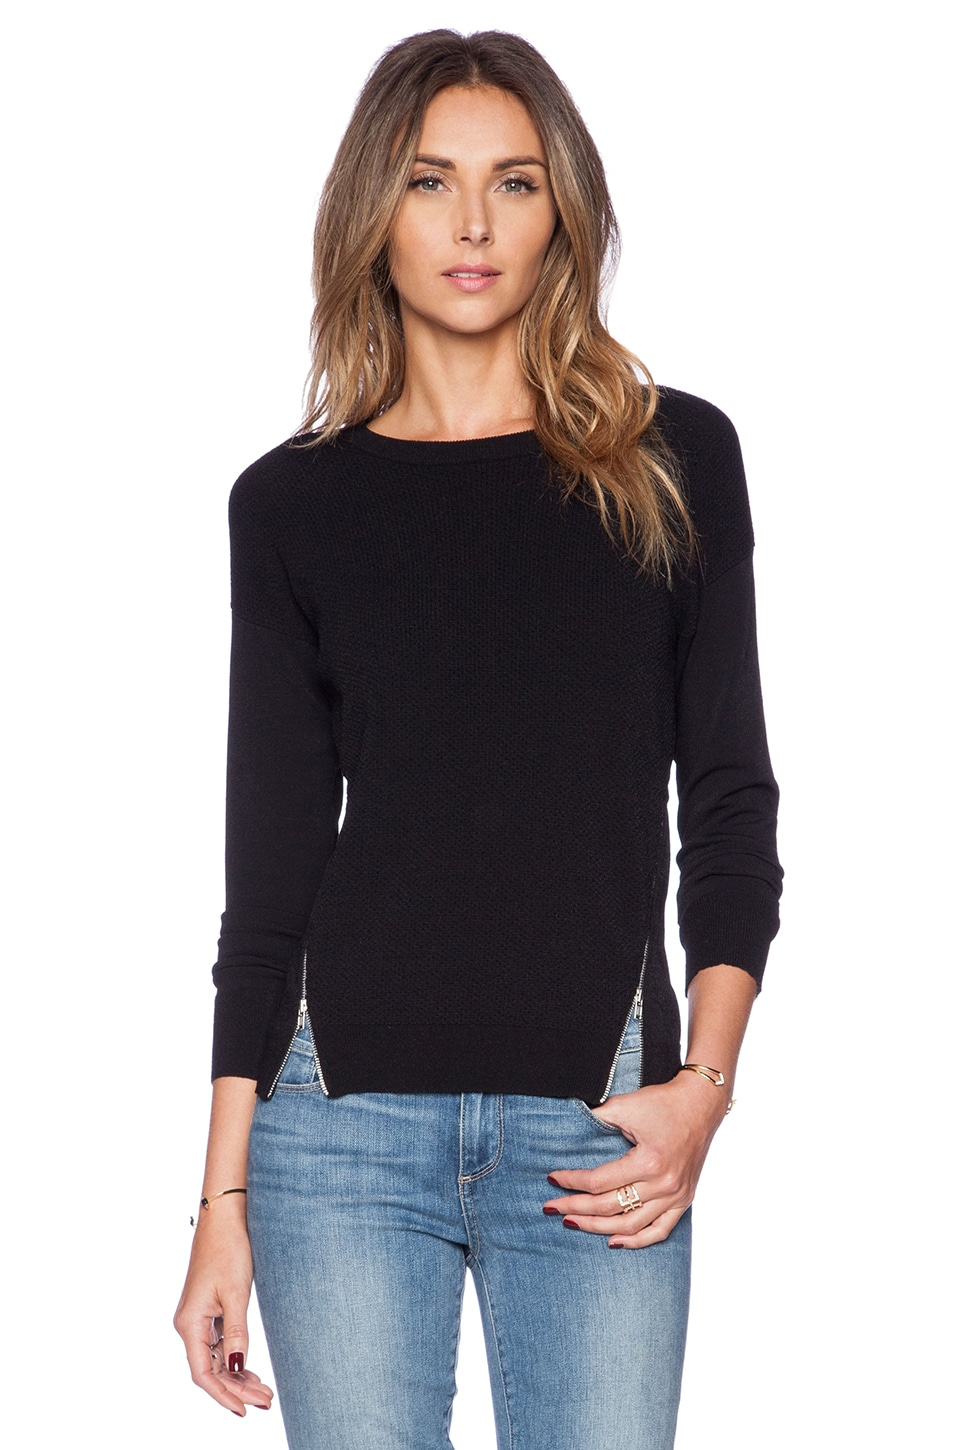 Autumn Cashmere Zipper Texture Sweater in Black